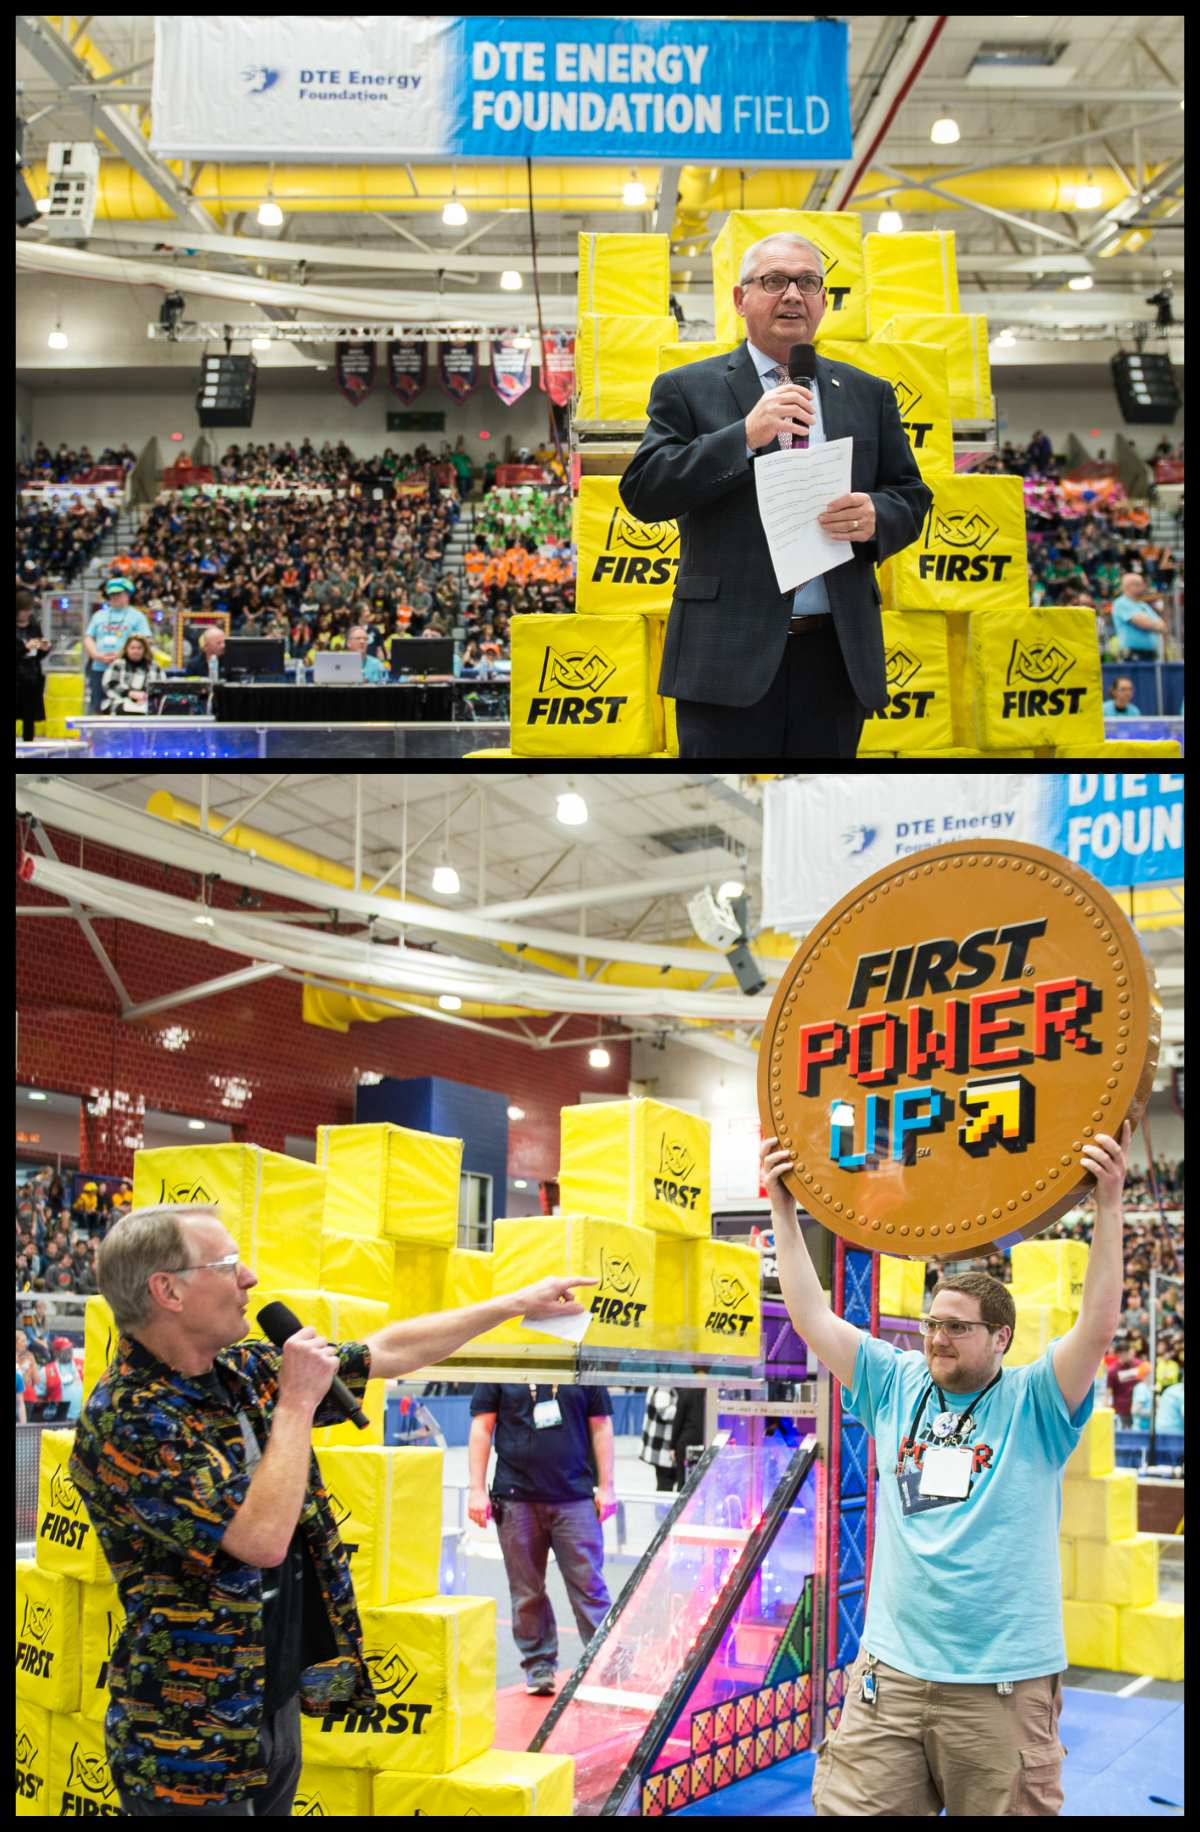 Collage of photos from FIRST Robotics Championships 2018